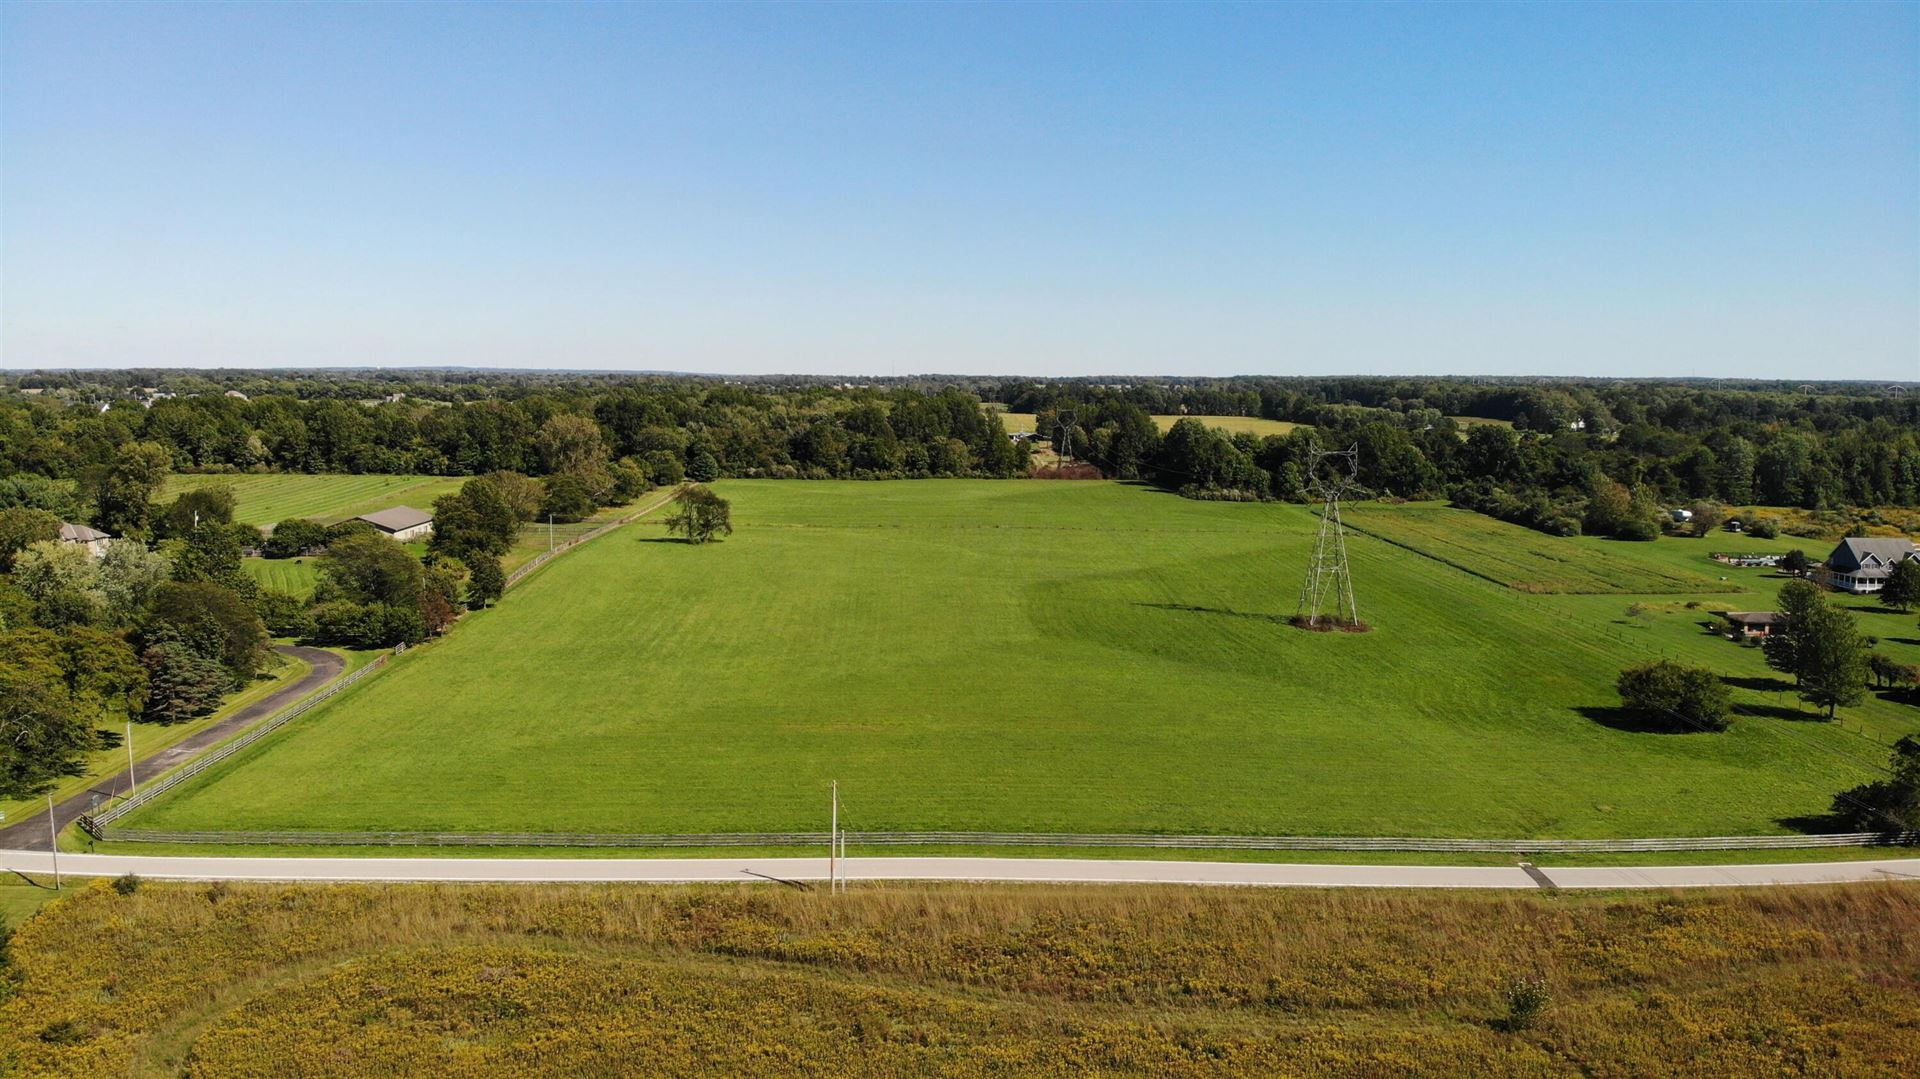 Photo of 0 Bevelhymer Road #Tract 2, New Albany, OH 43054 (MLS # 221037774)